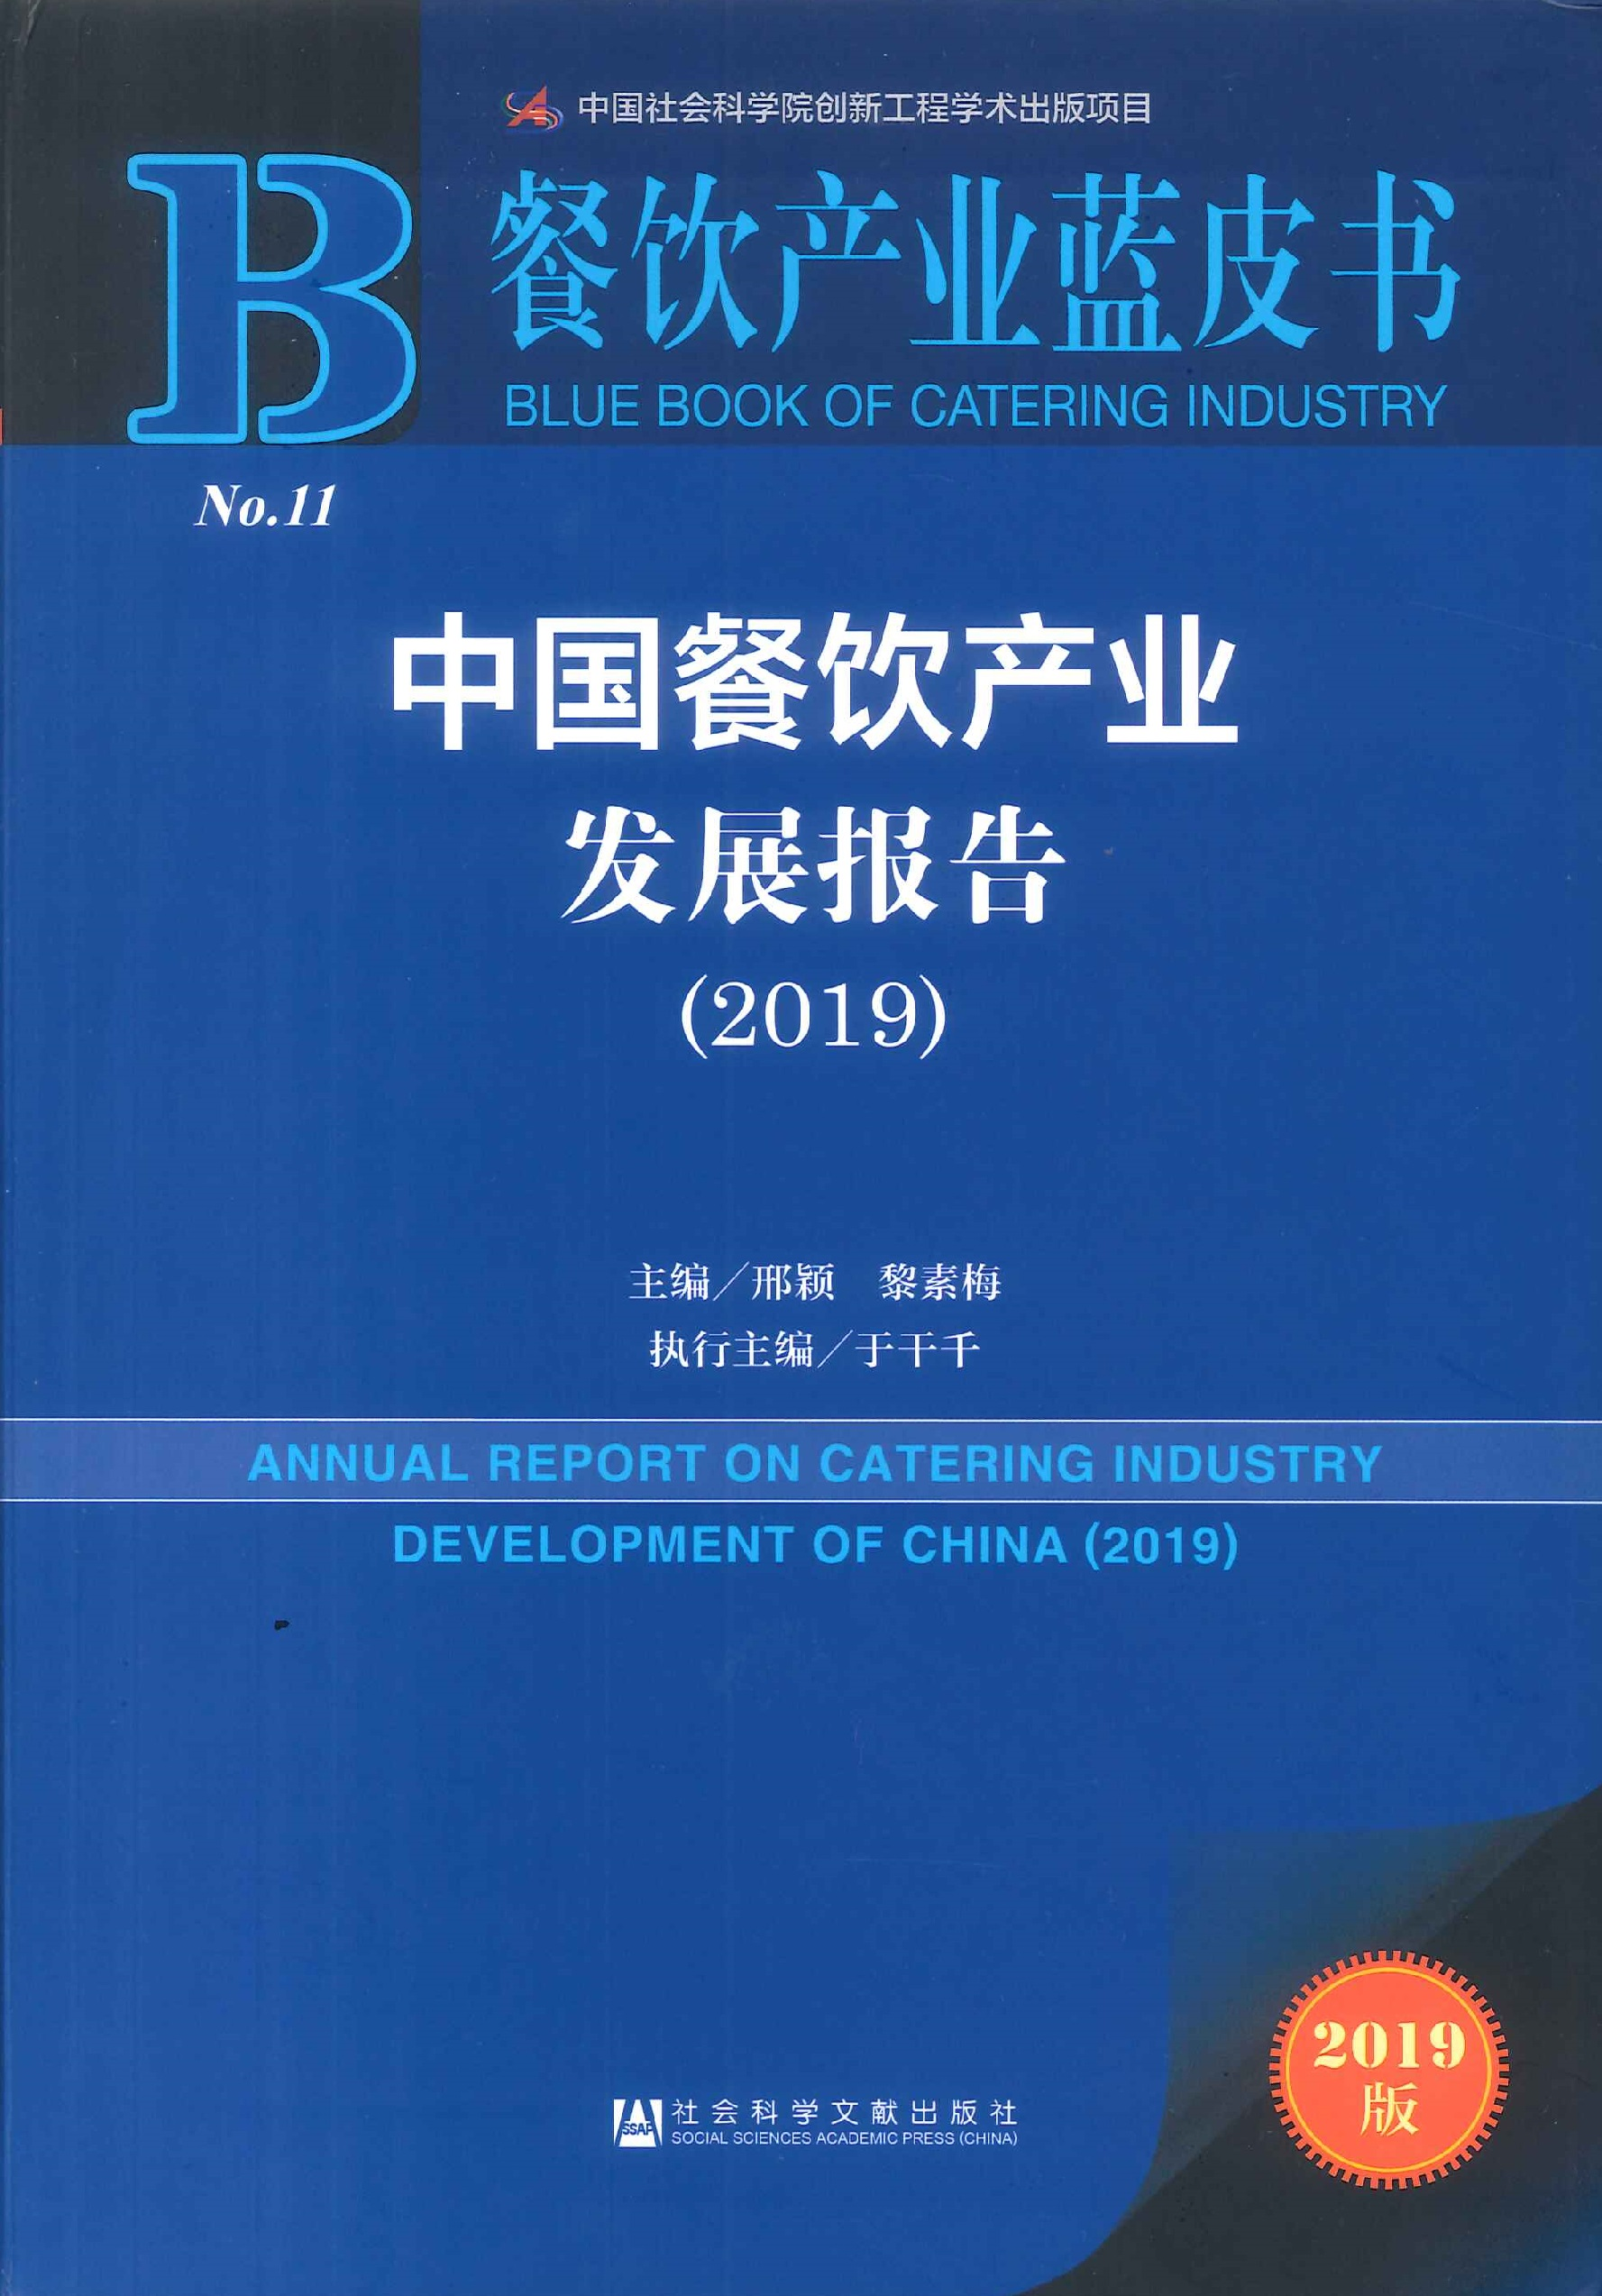 中国餐饮产业发展报告=Annual report on catering industry development of China